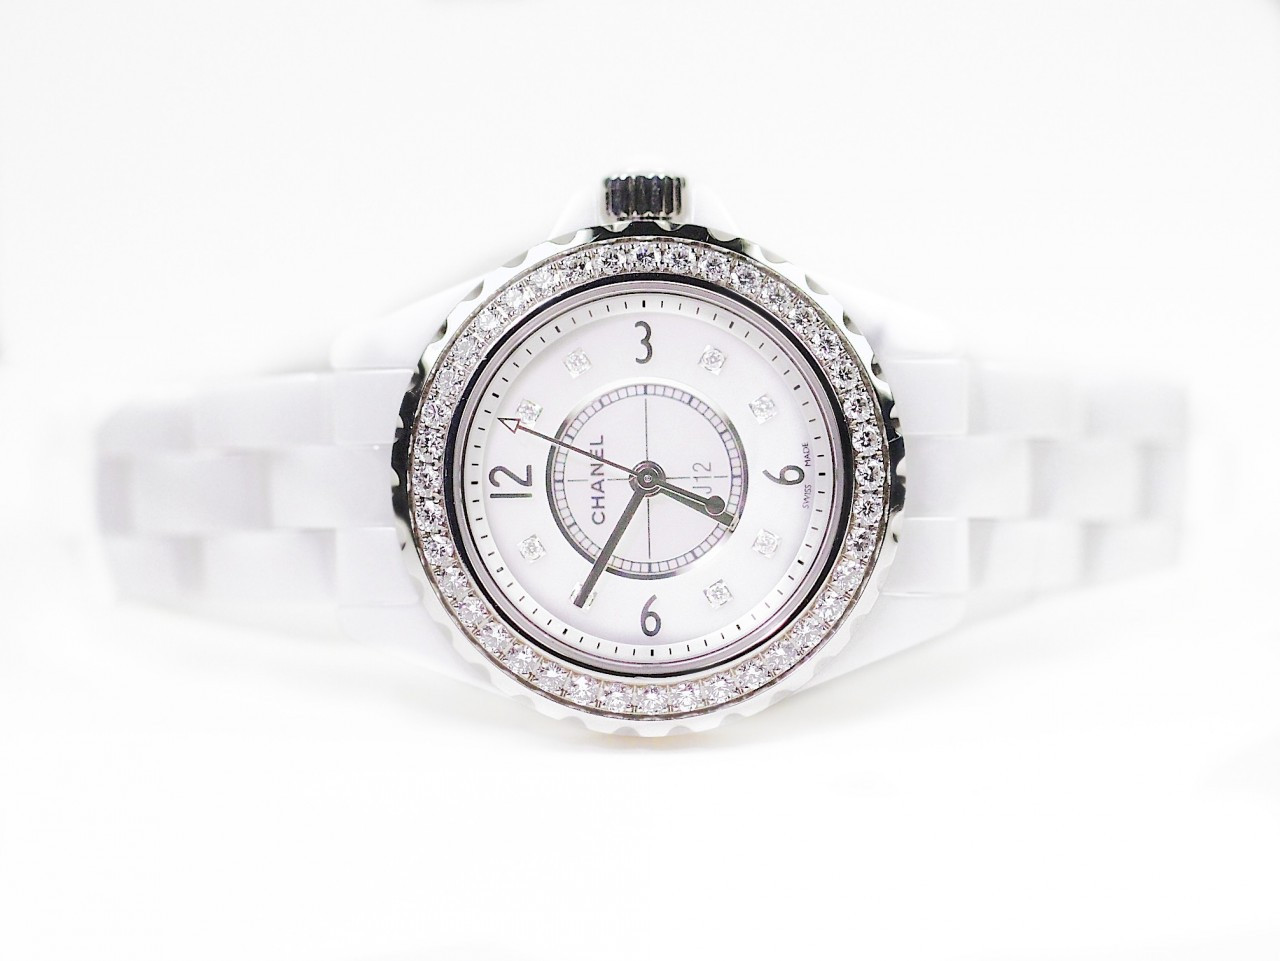 bezel chanel watches white watch ladies diamond ceramic